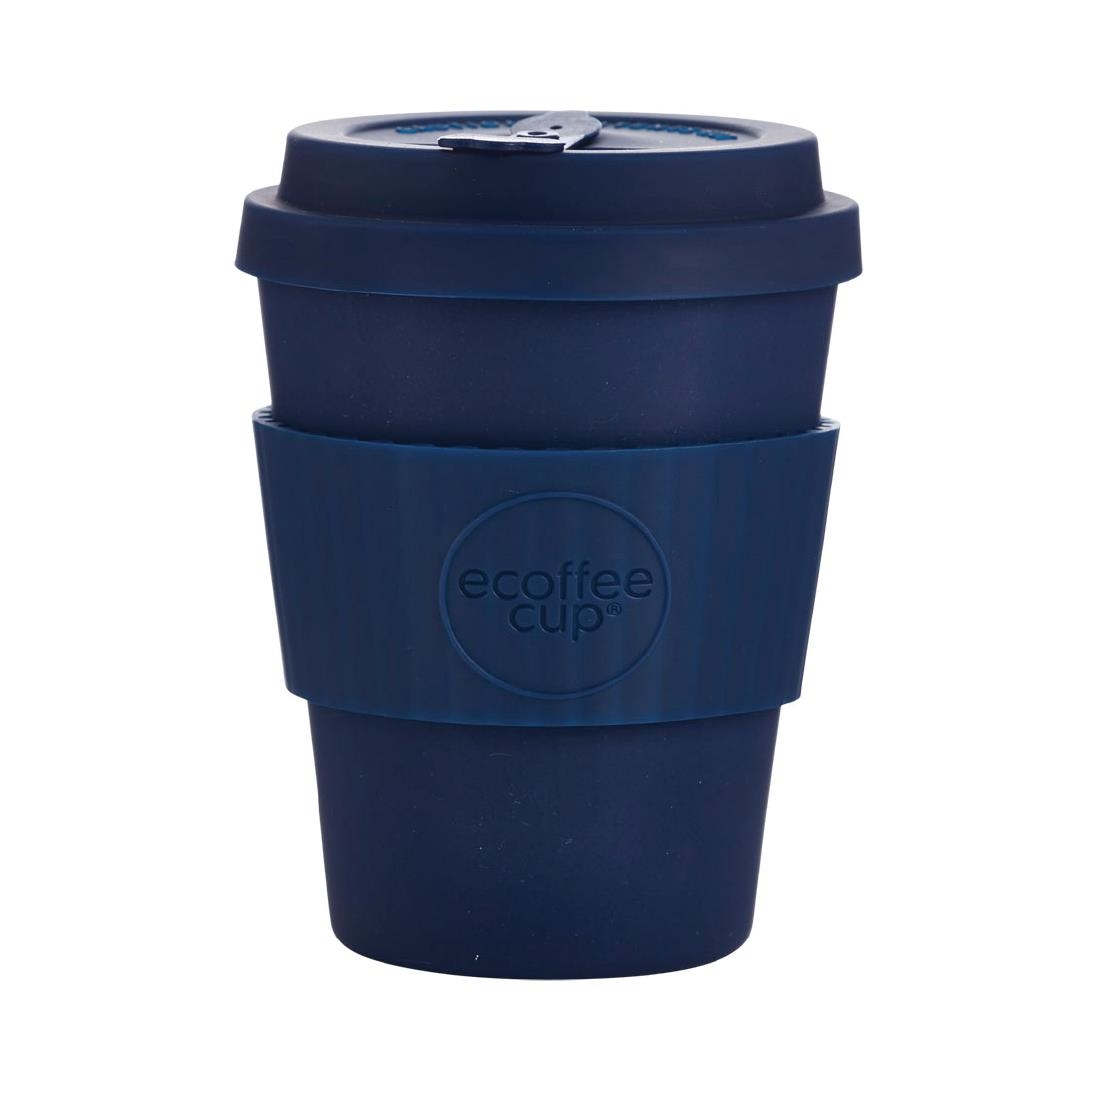 Image of Ecoffee Cup Bamboo Reusable Coffee Cup Dark Energy Navy 12oz